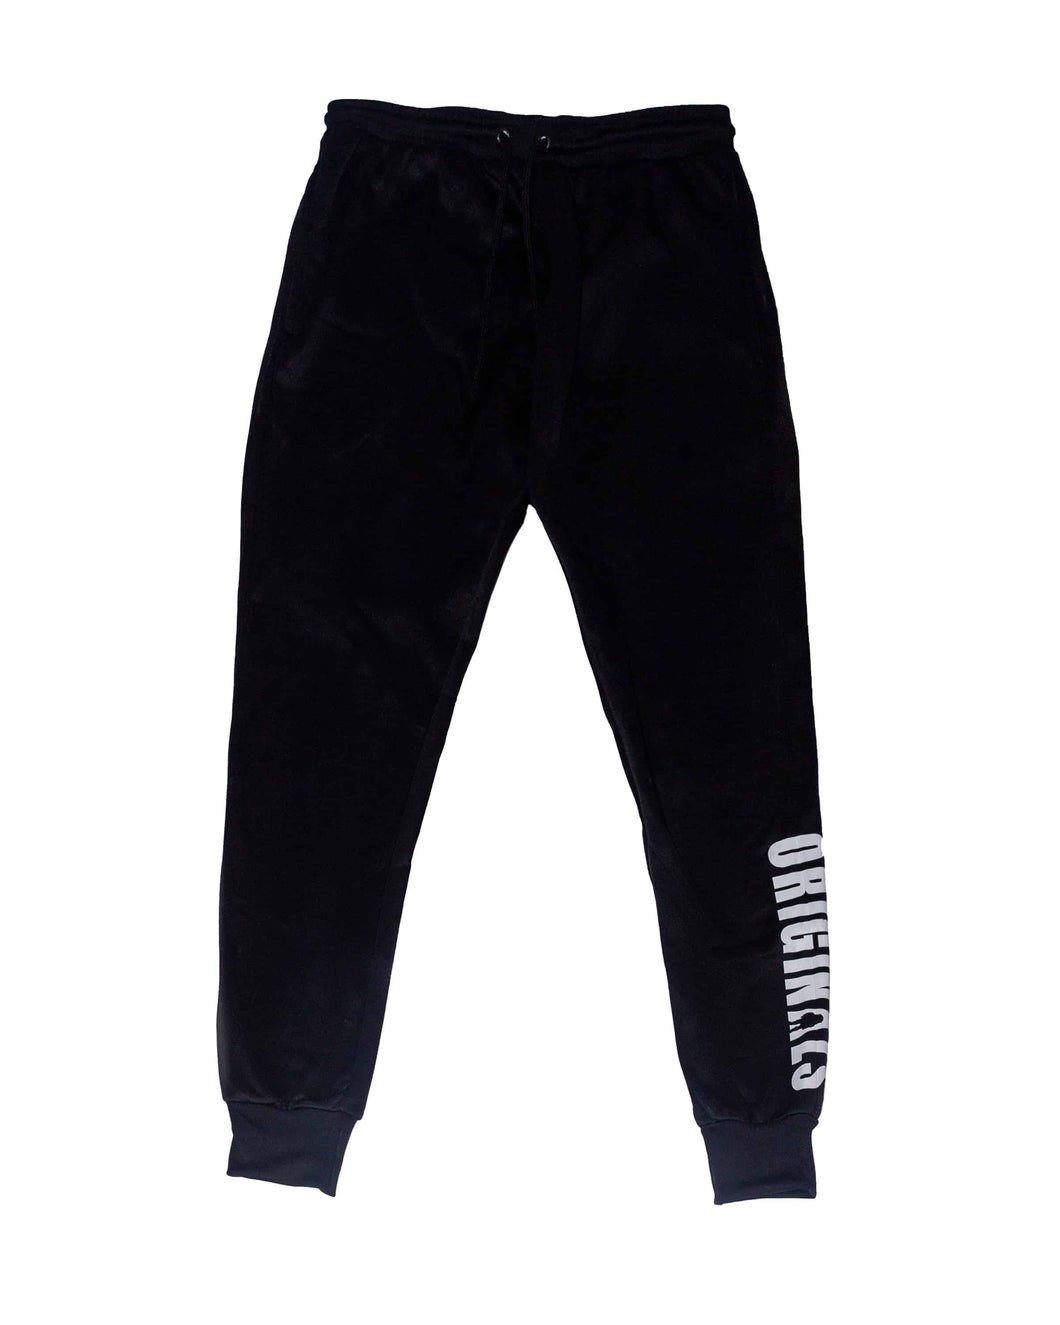 ORIGINALS Anti-G Joggers - Apollo Originals